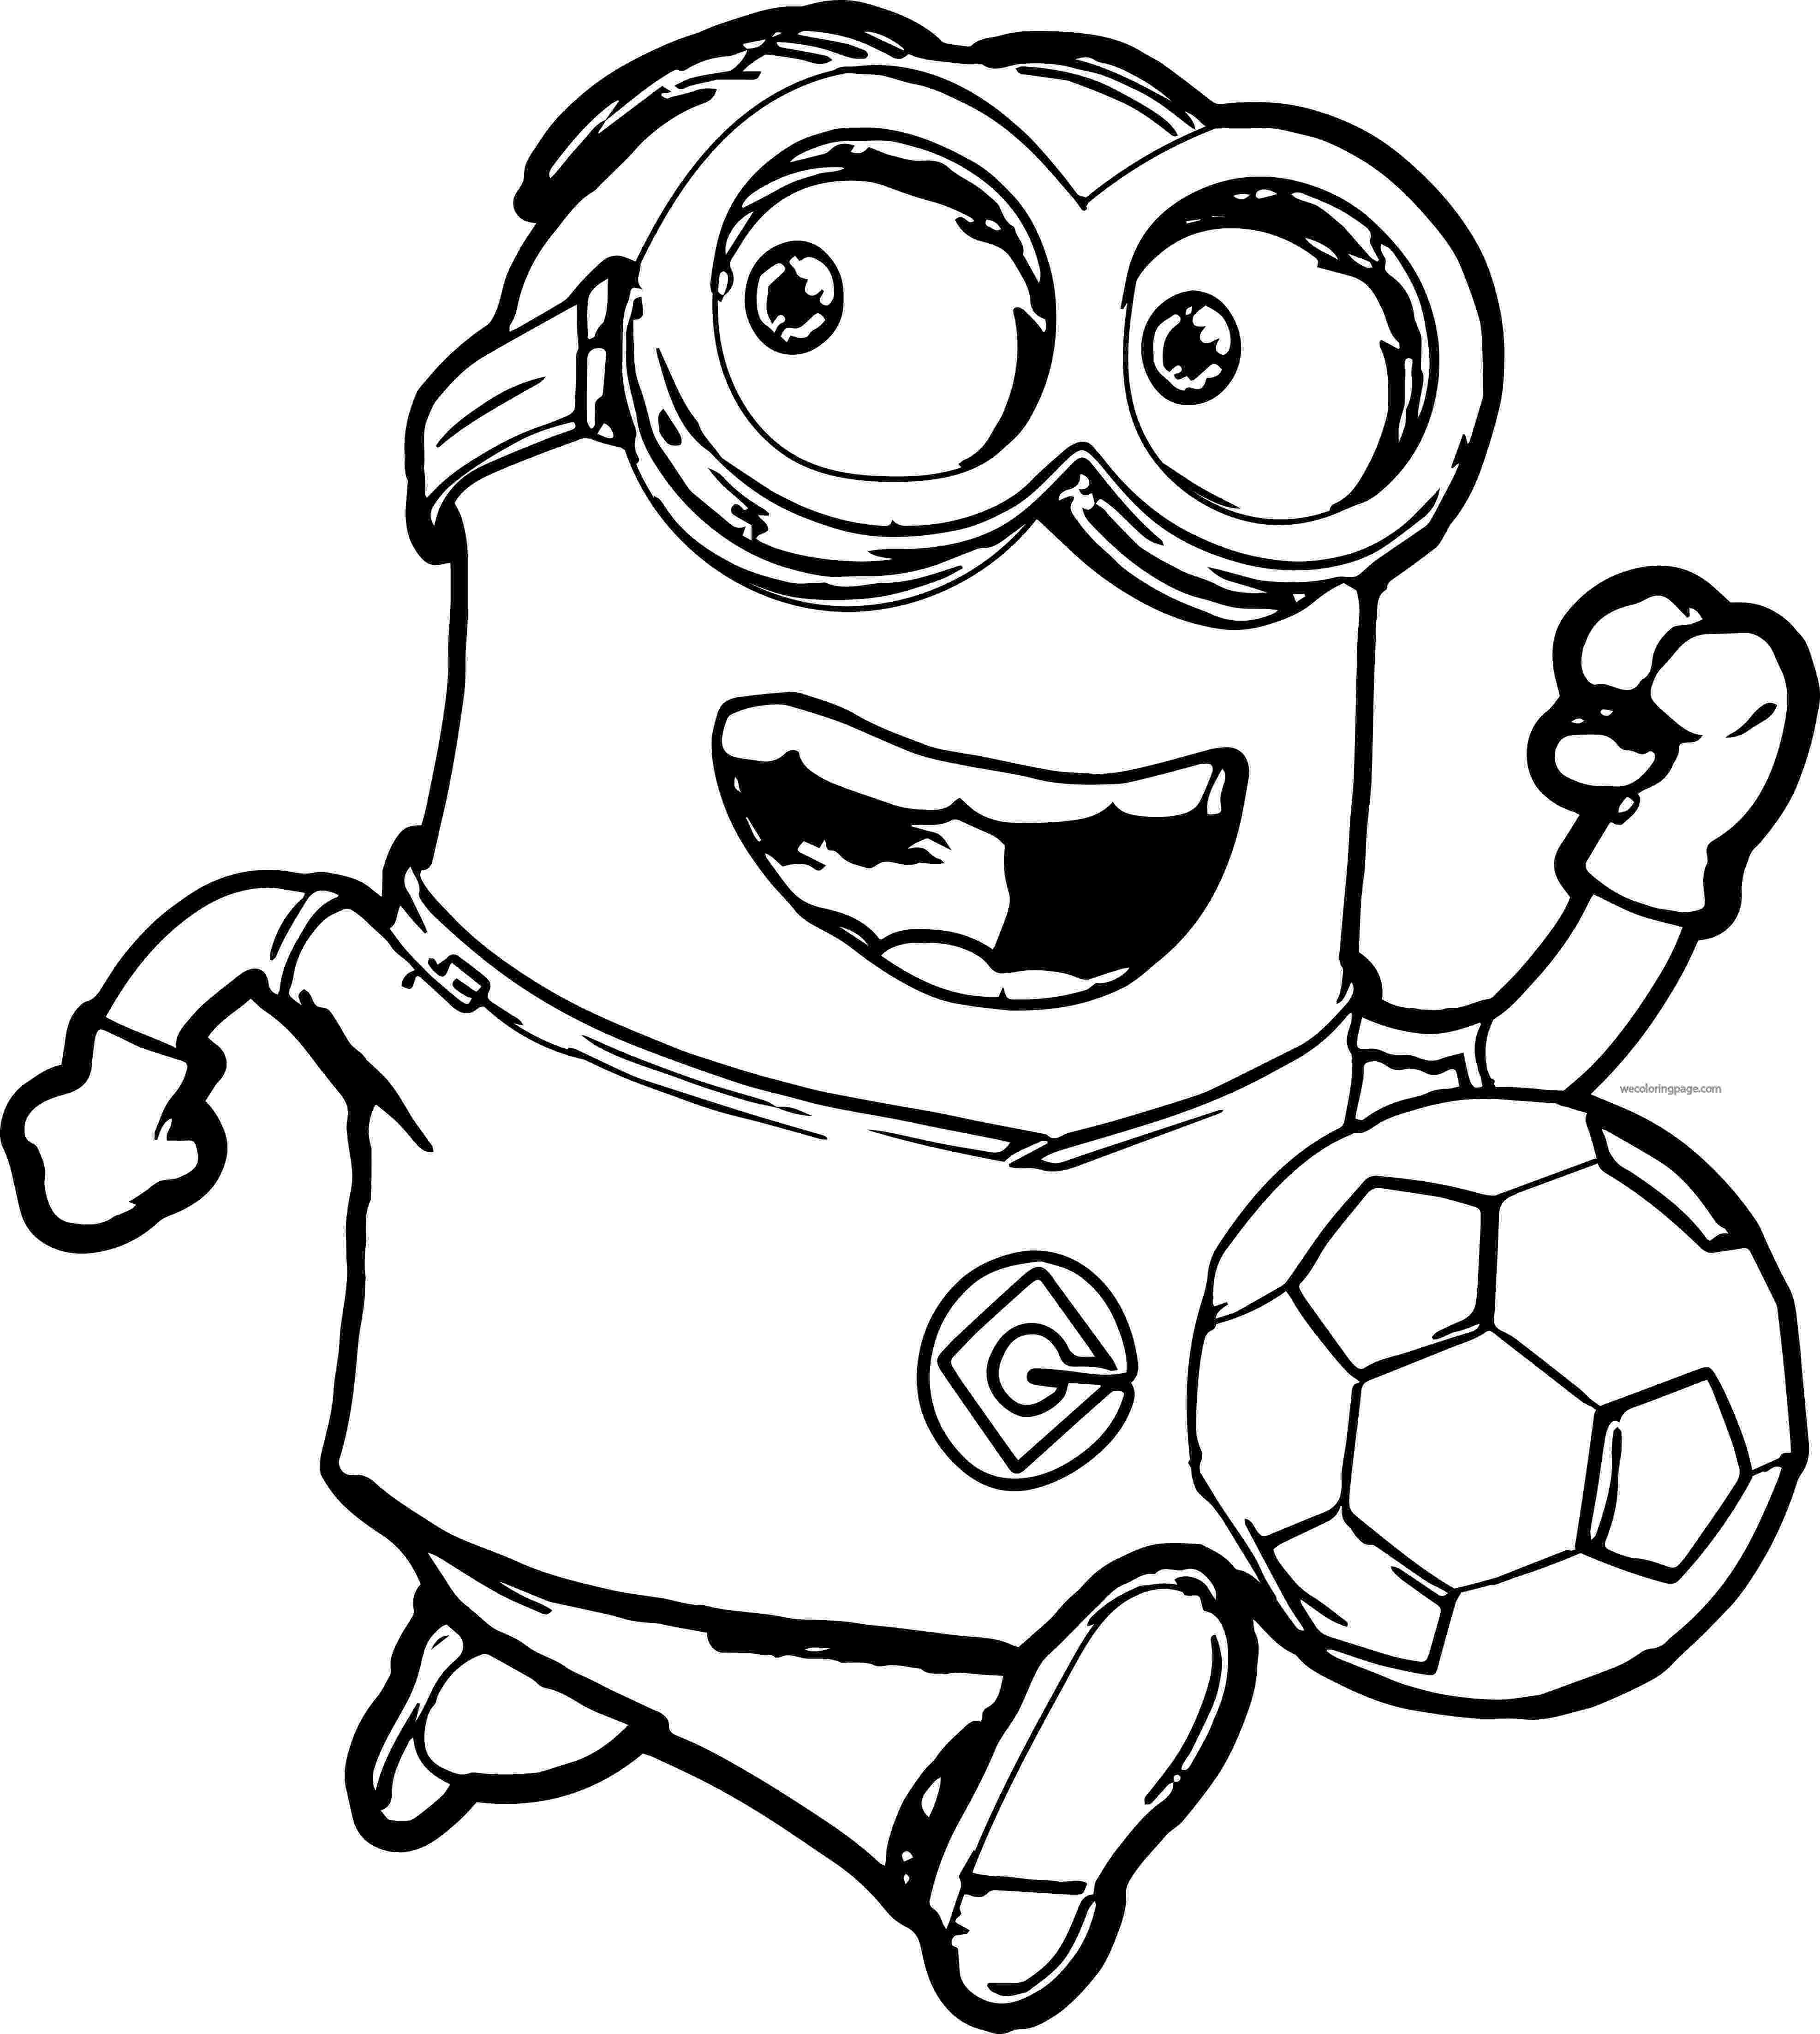 soccer coloring pages minion soccer player coloring pages wecoloringpage coloring soccer pages